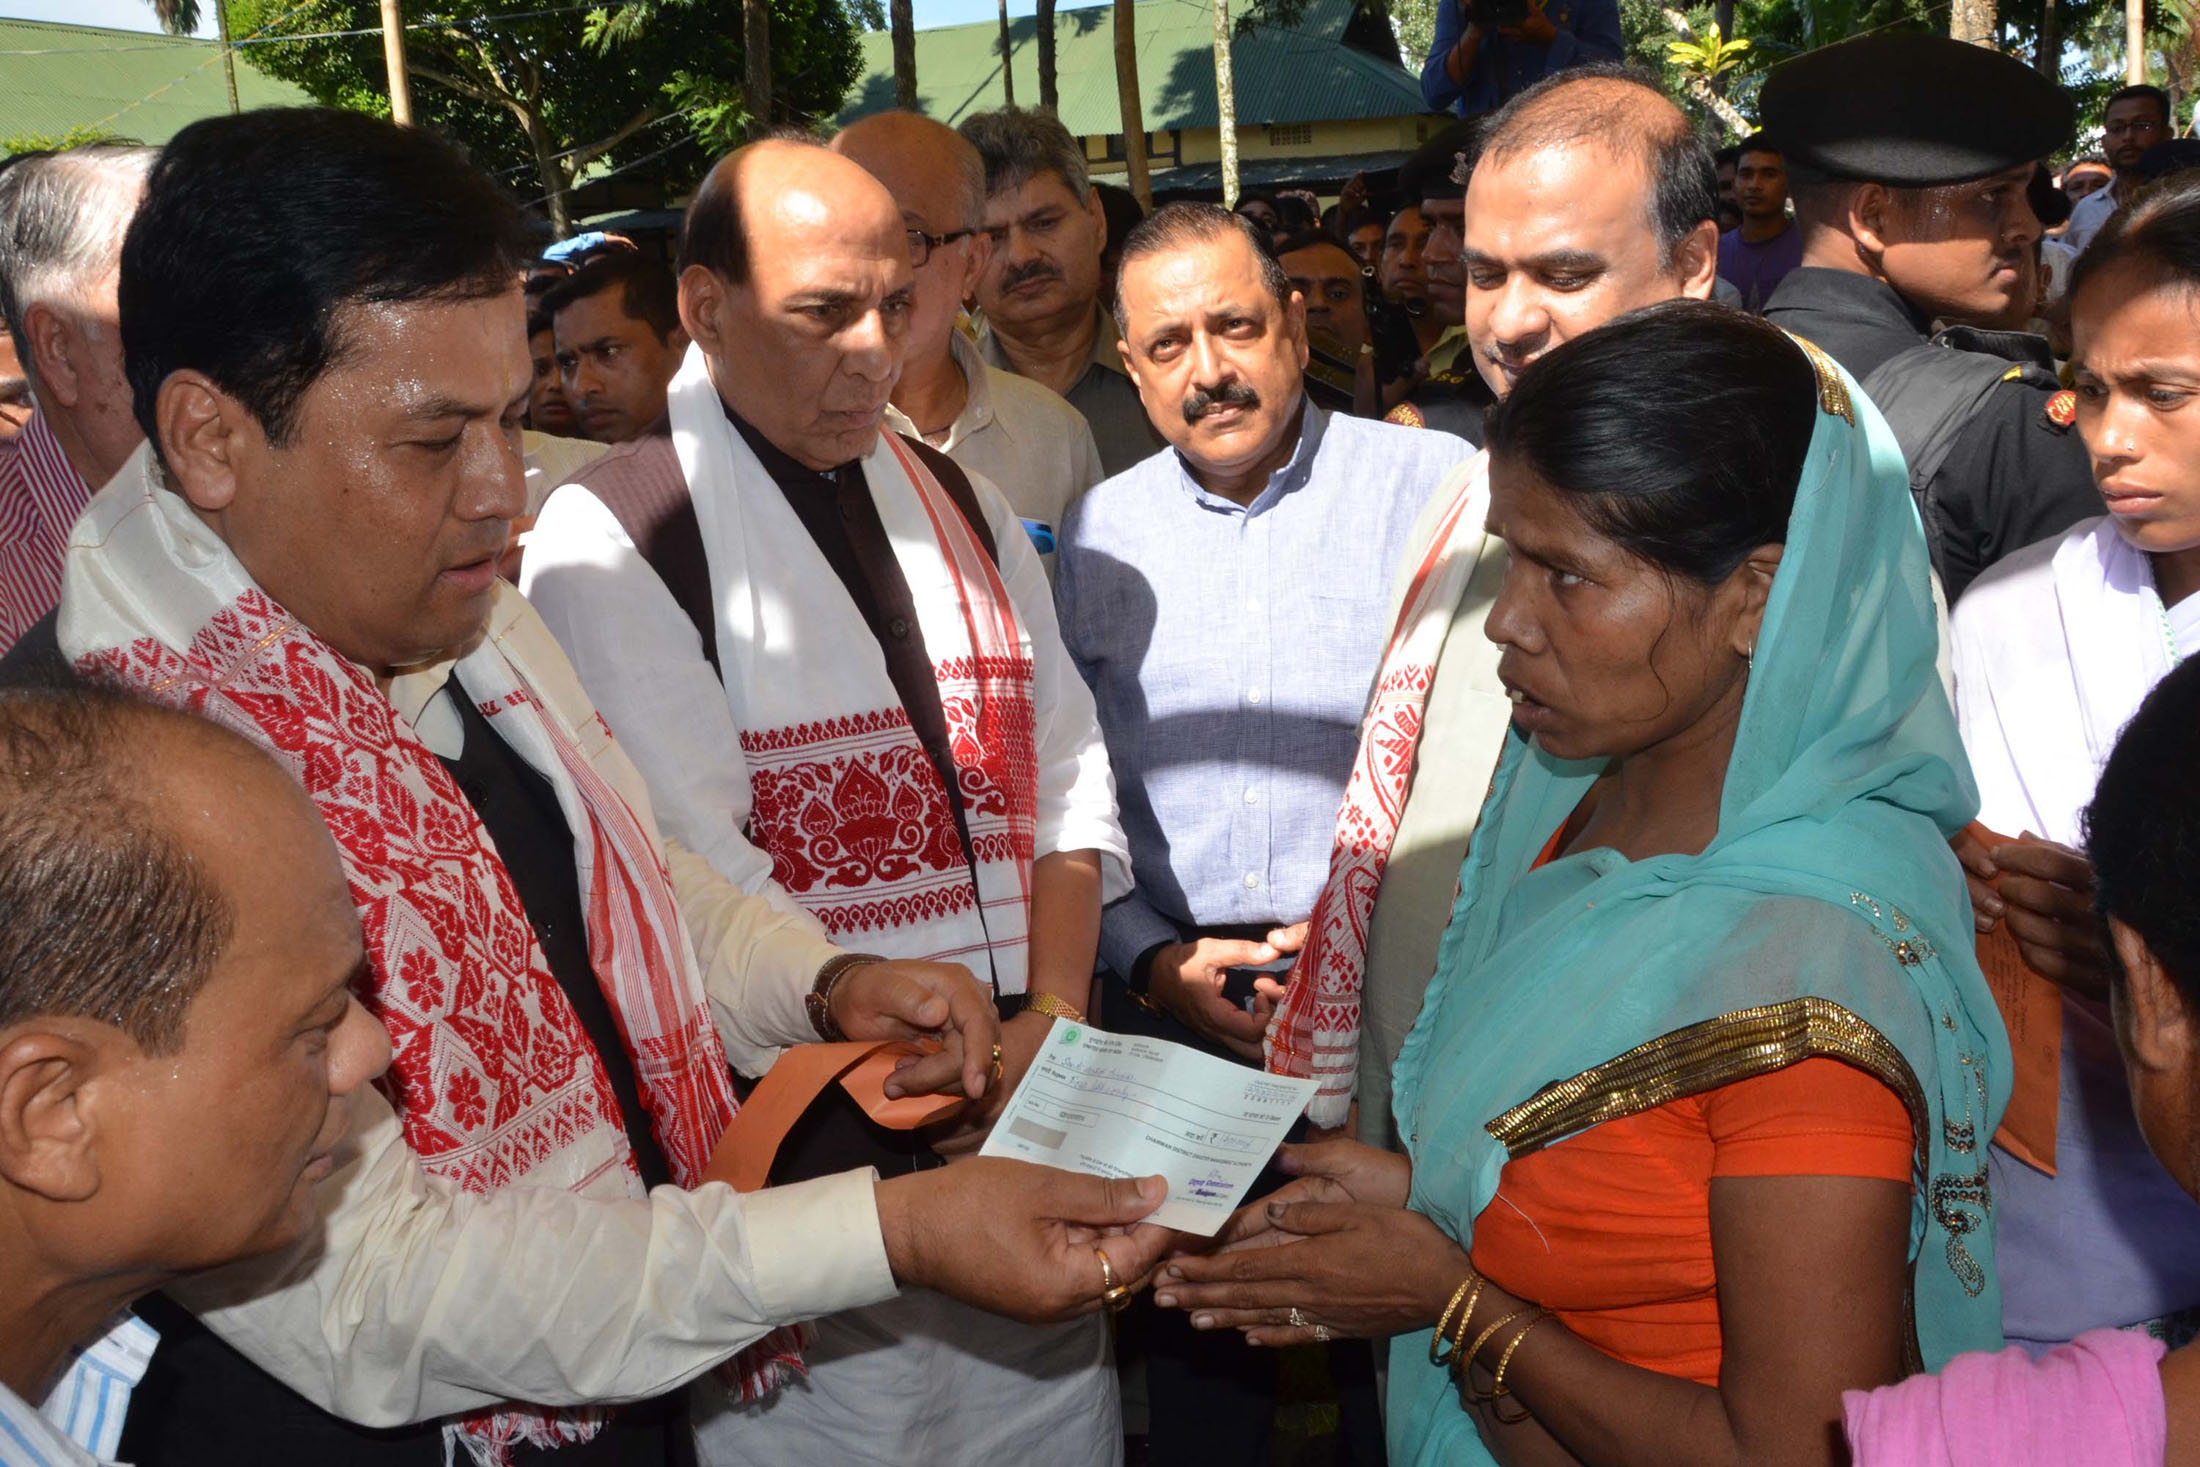 The Union Home Minister, Shri Rajnath Singh at the flood relive camp, at Morigaon District of Assam on July 30, 2016. The Chief Minister of Assam, Shri Sarbananda Sonowal and the Minister of State for Development of North Eastern Region (I/C), Prime Minister's Office, Personnel, Public Grievances & Pensions, Atomic Energy and Space, Dr. Jitendra Singh are also seen.